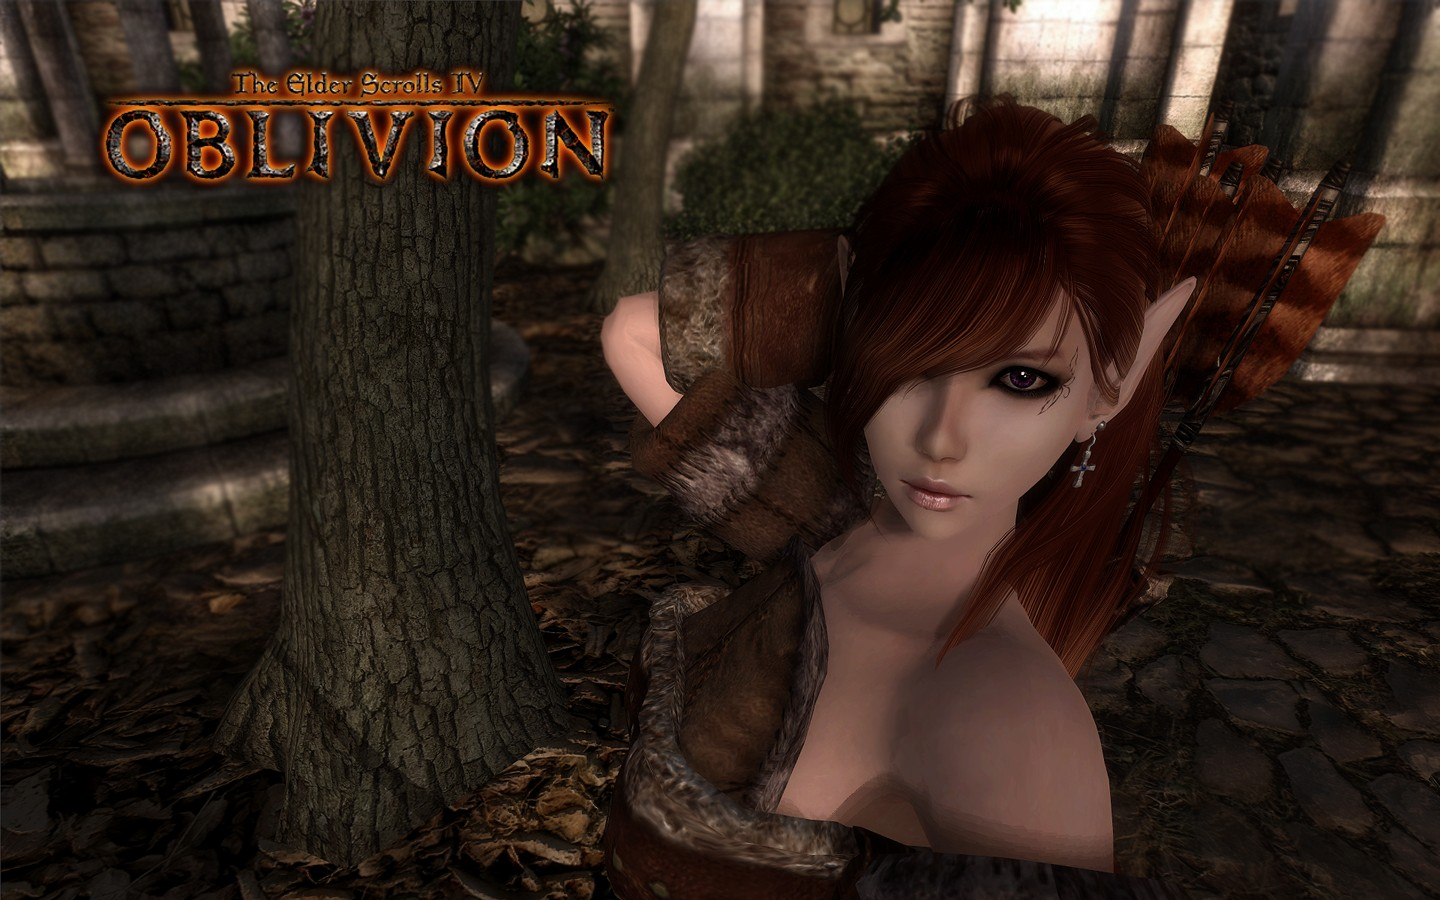 Elder scroll oblivion hg eye candy porn videos